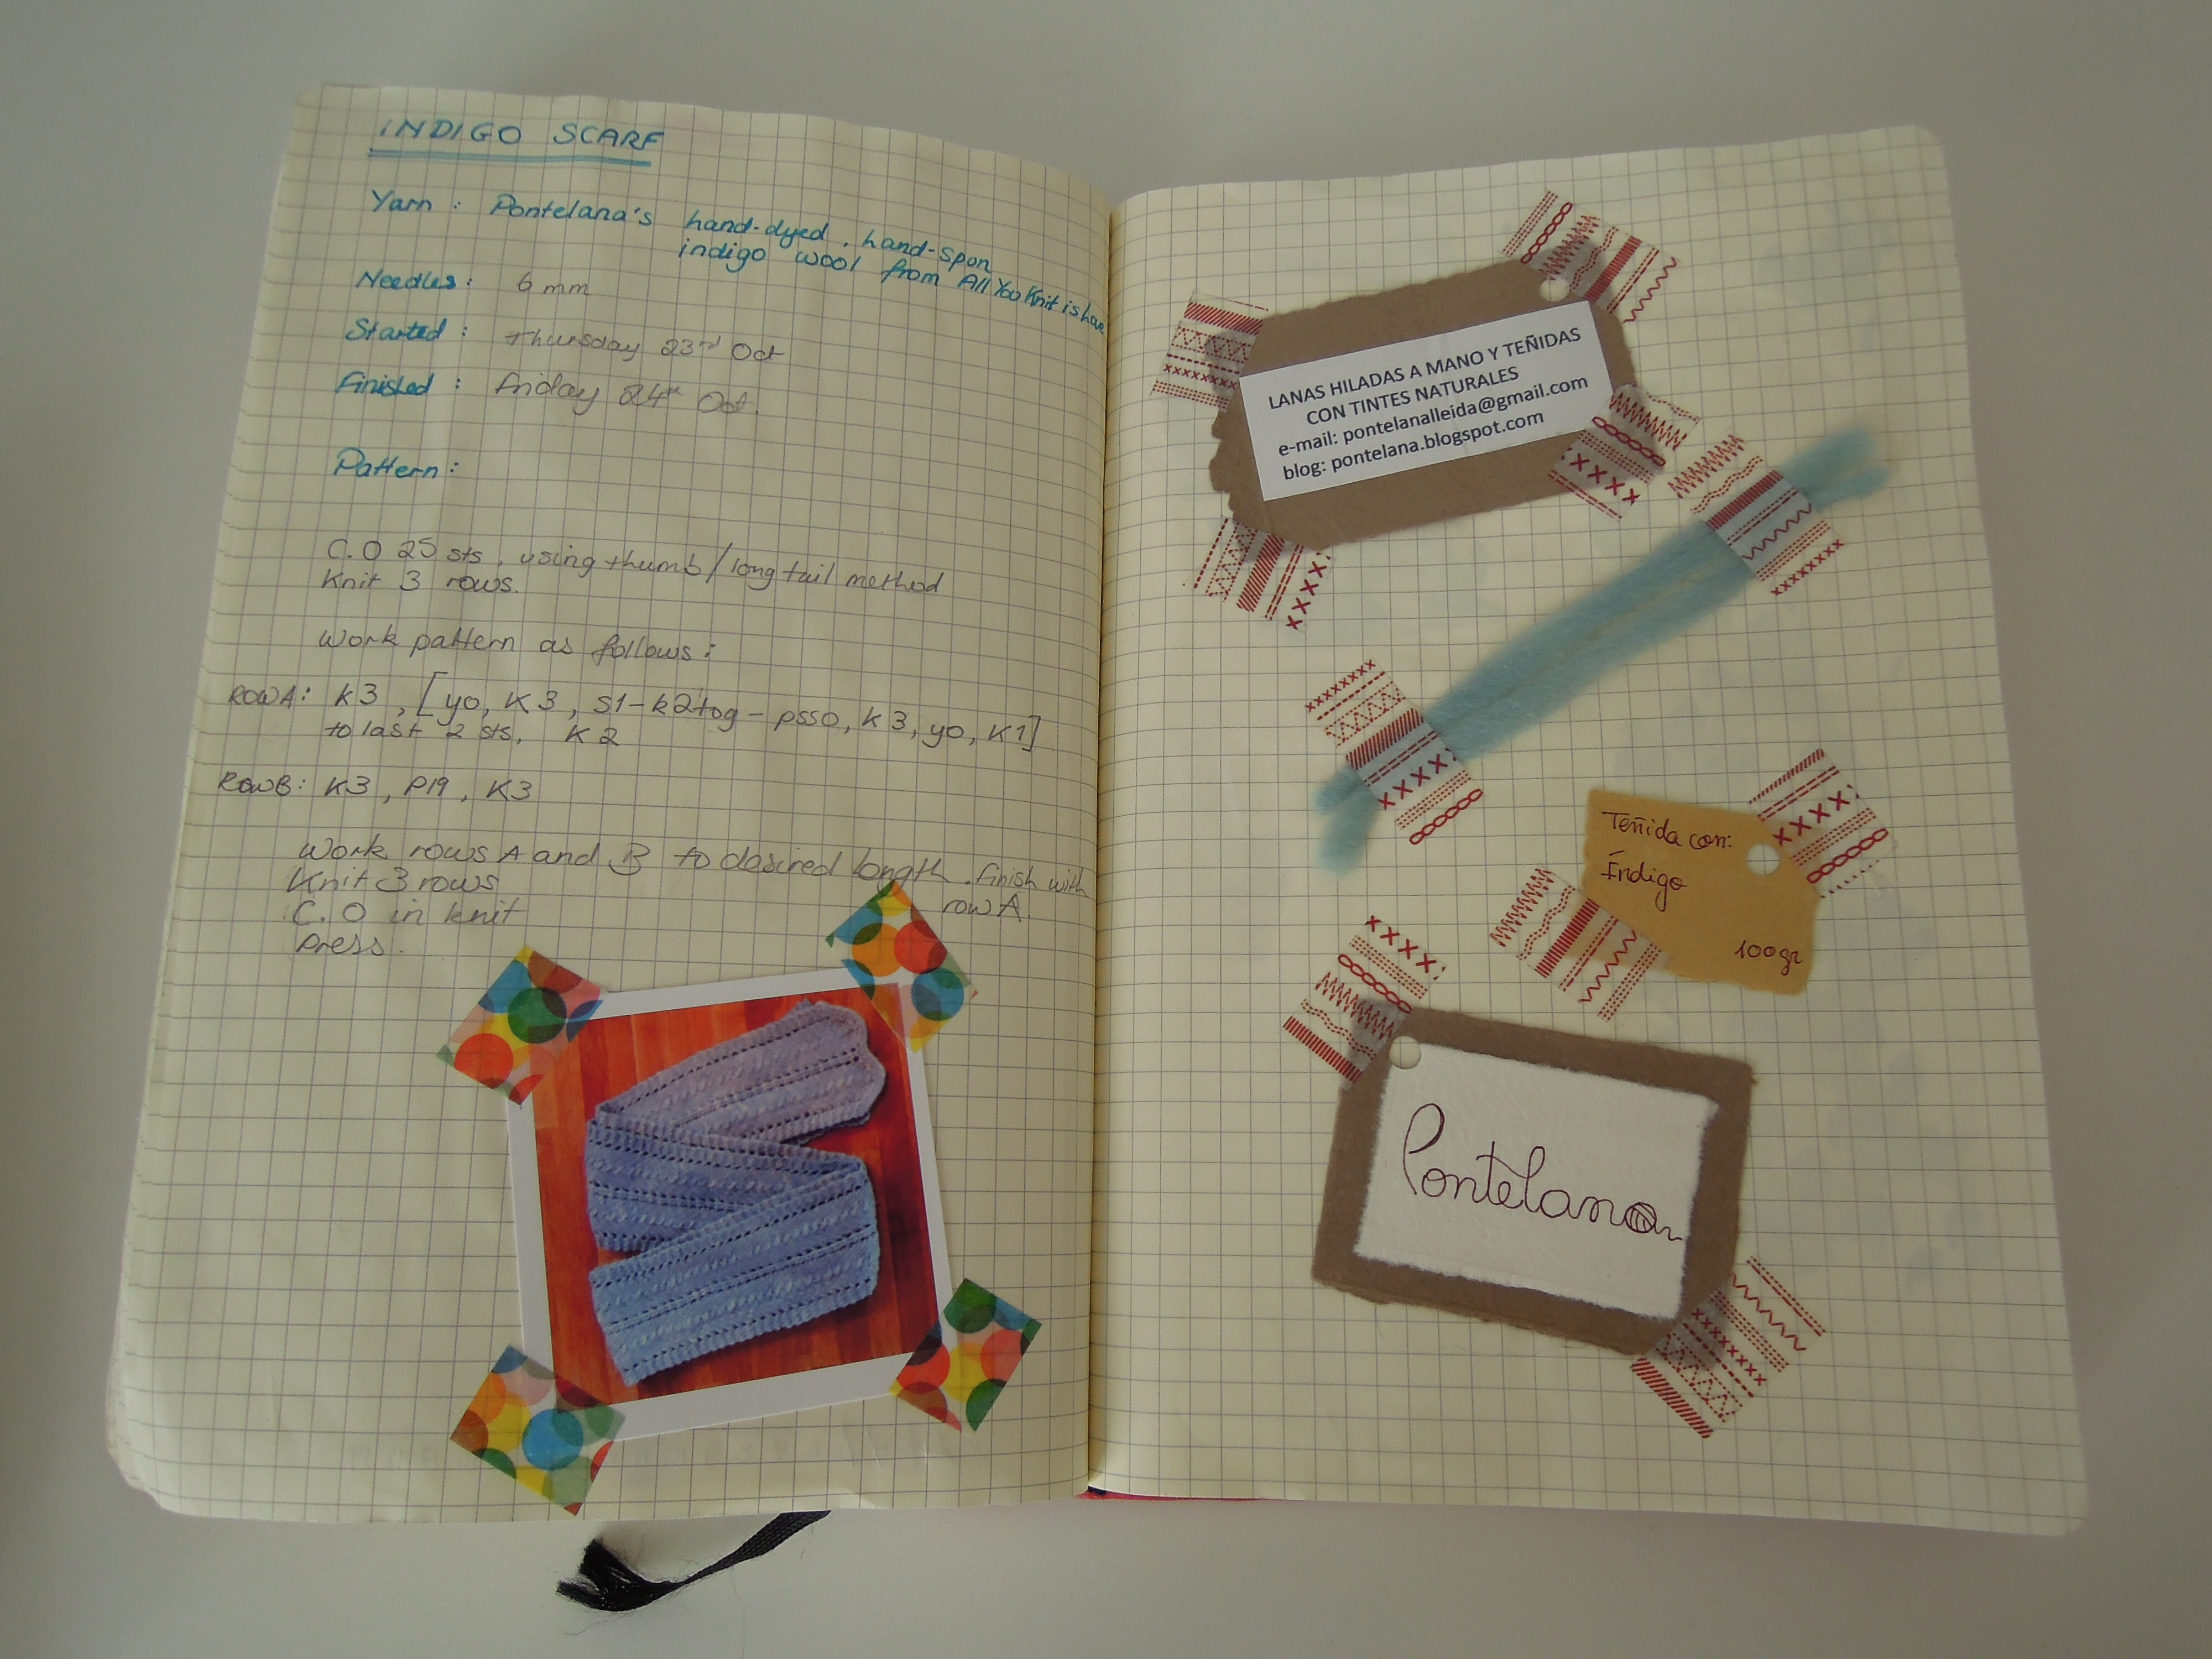 Knitting Project Journal : Knitting notebooks and journals on pinterest